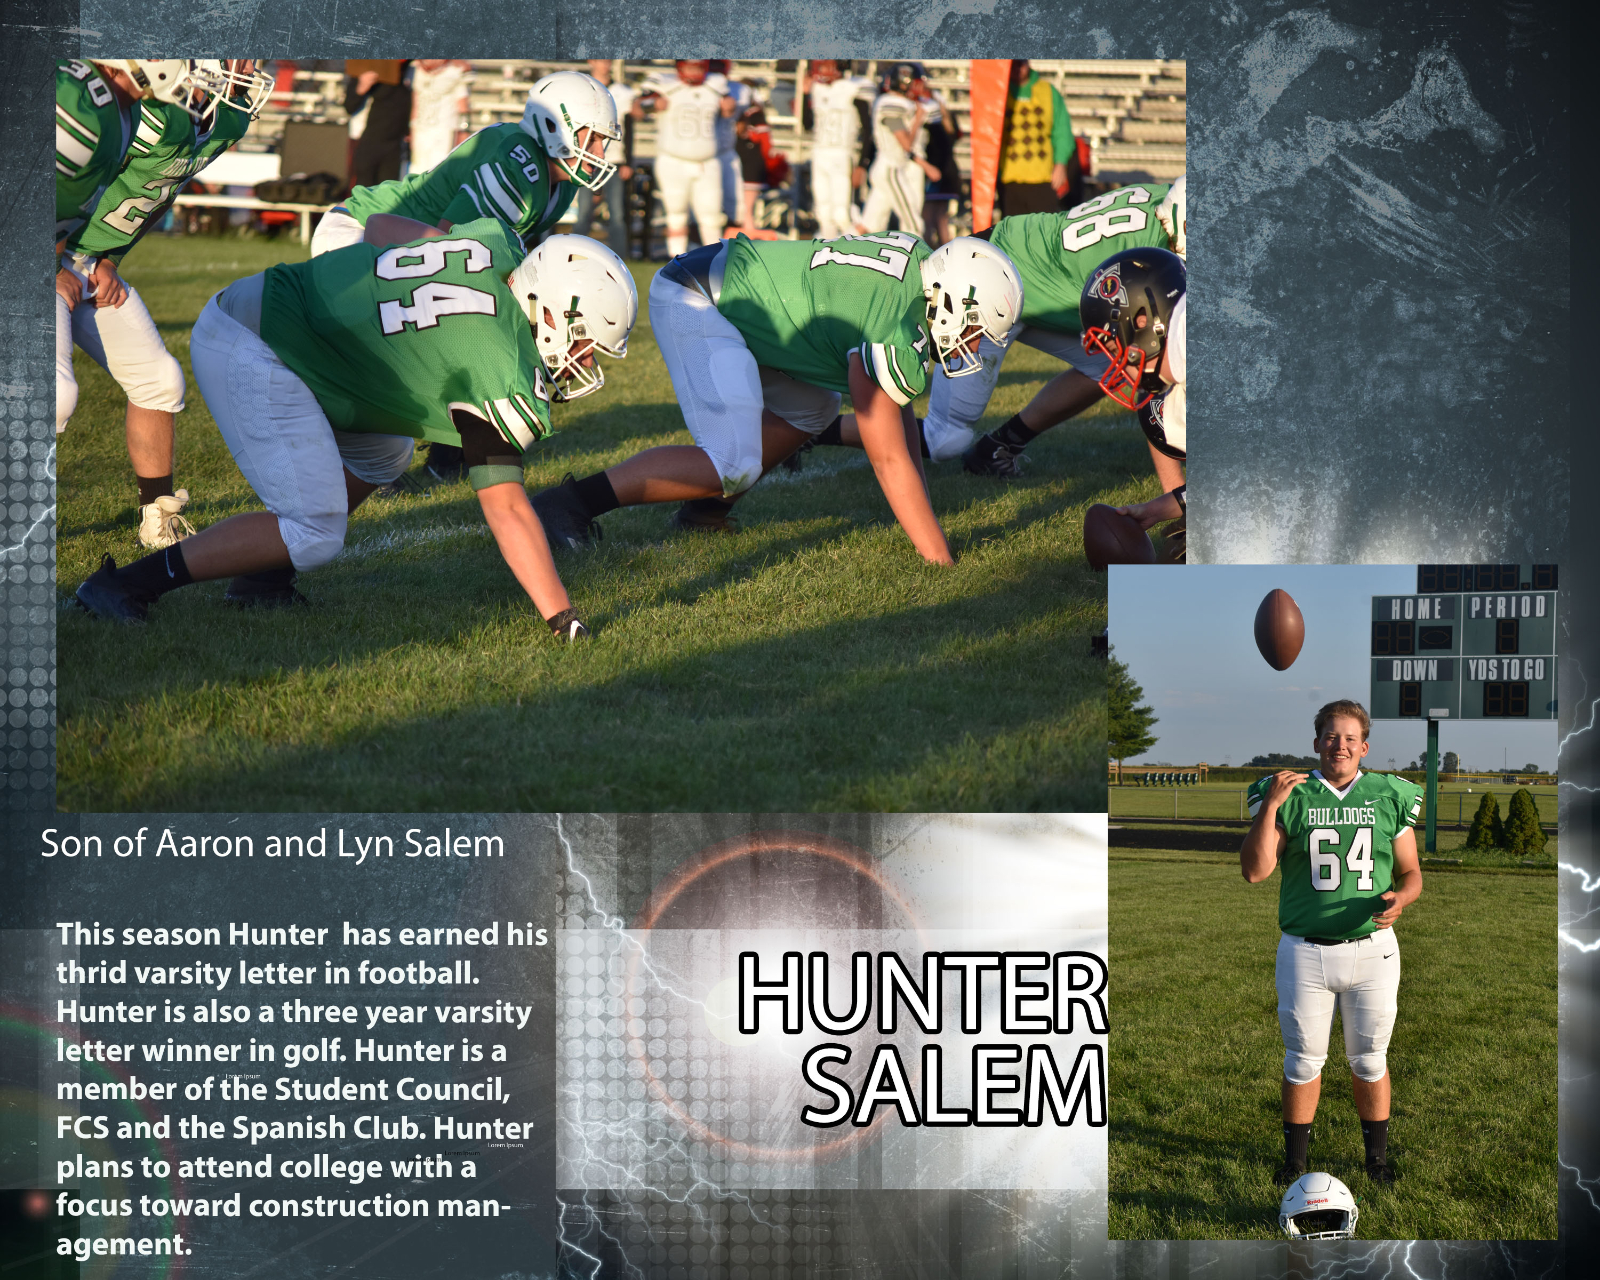 Senior Football Player – Hunter Salem